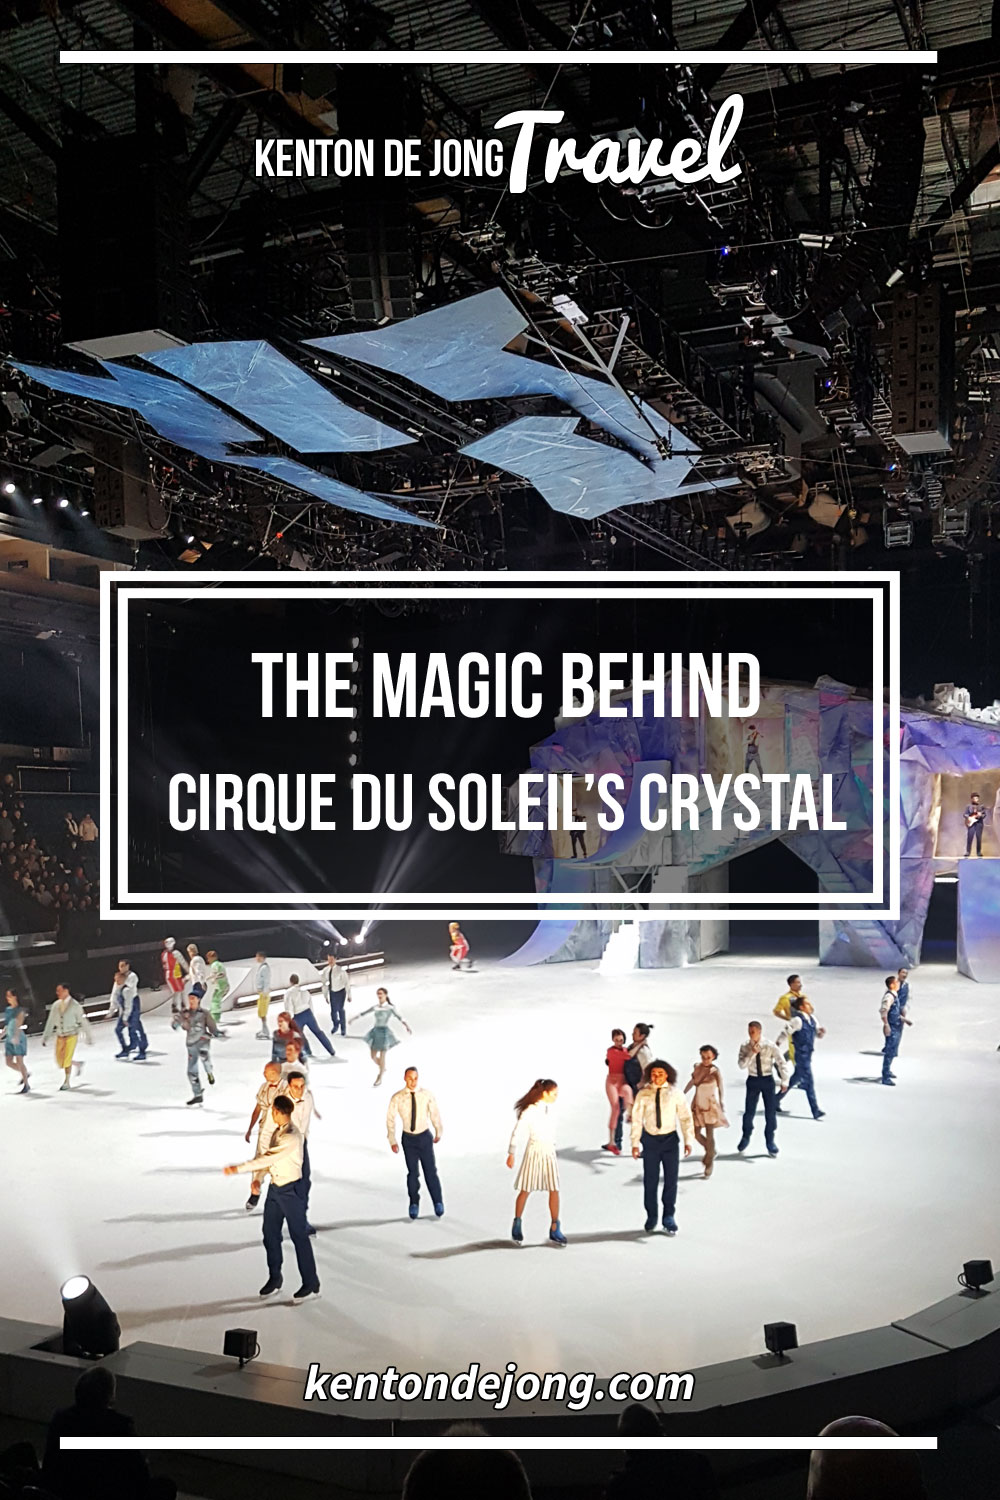 The Magic Behind Cirque du Soleil's Crystal